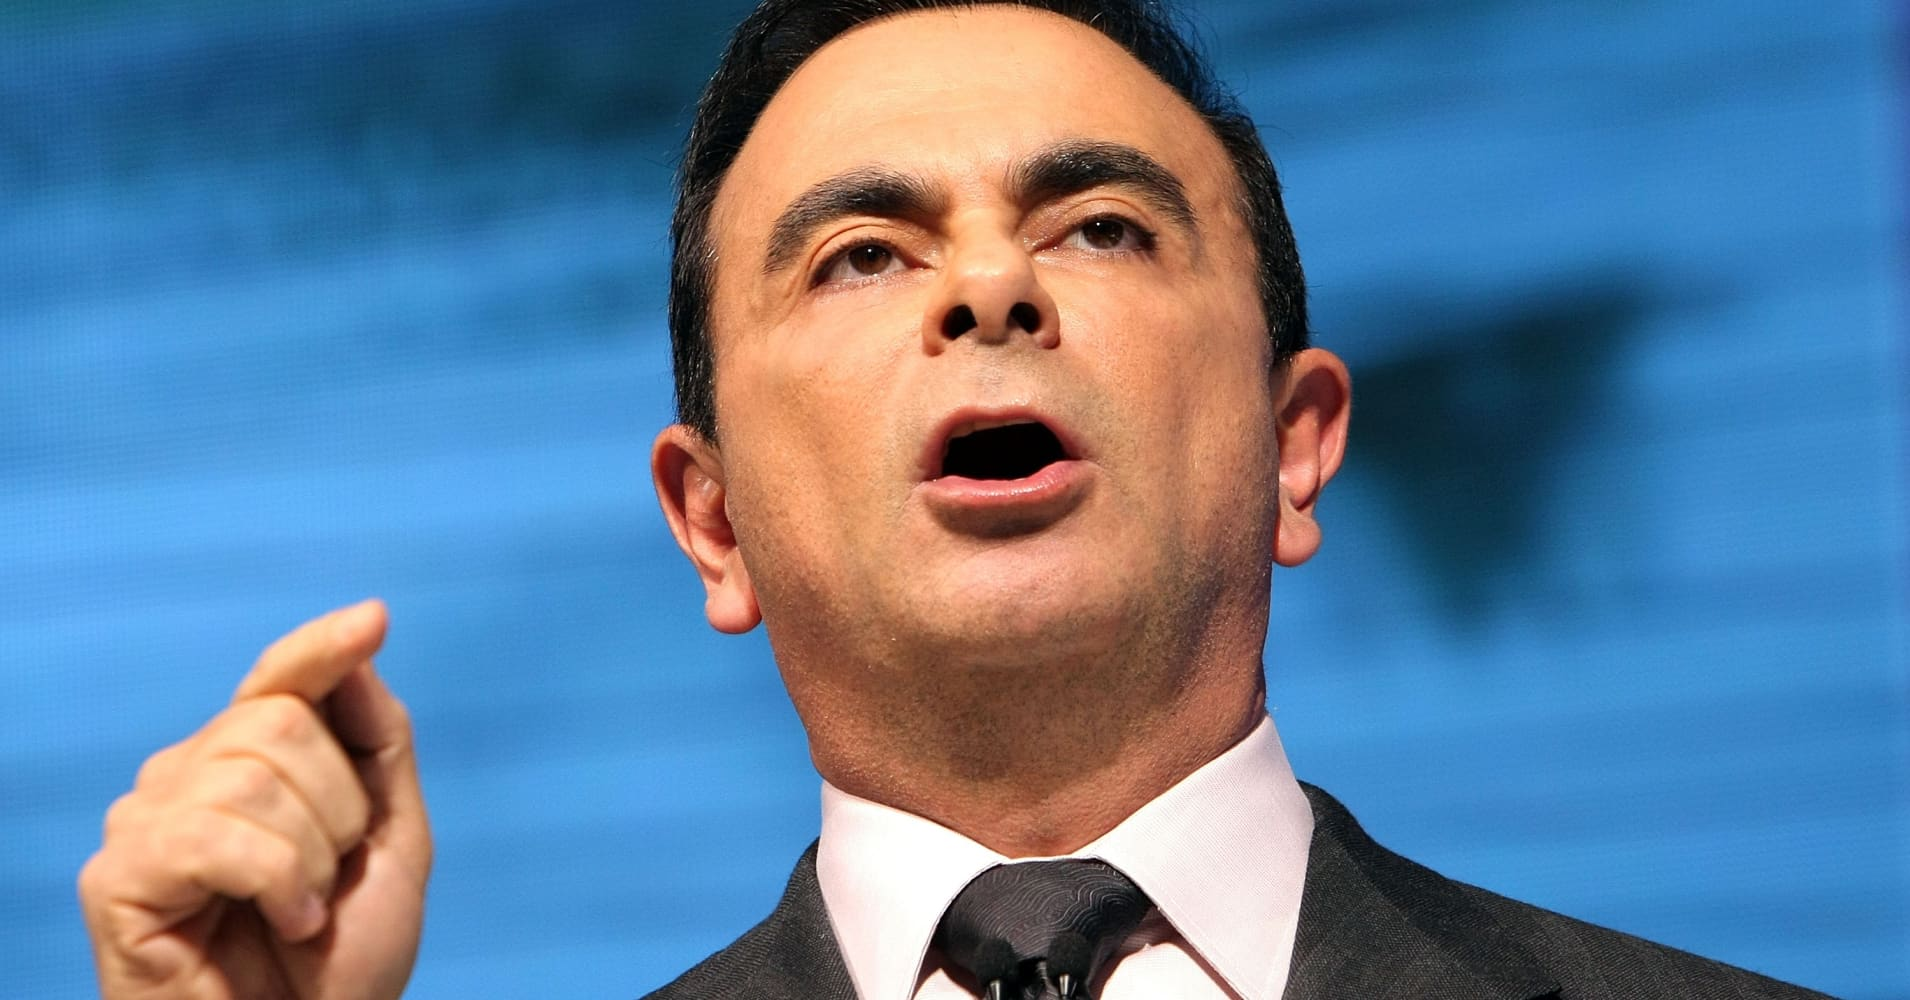 Japanese prosecutors reportedly will arrest Carlos Ghosn on fresh claim, prolonging custody